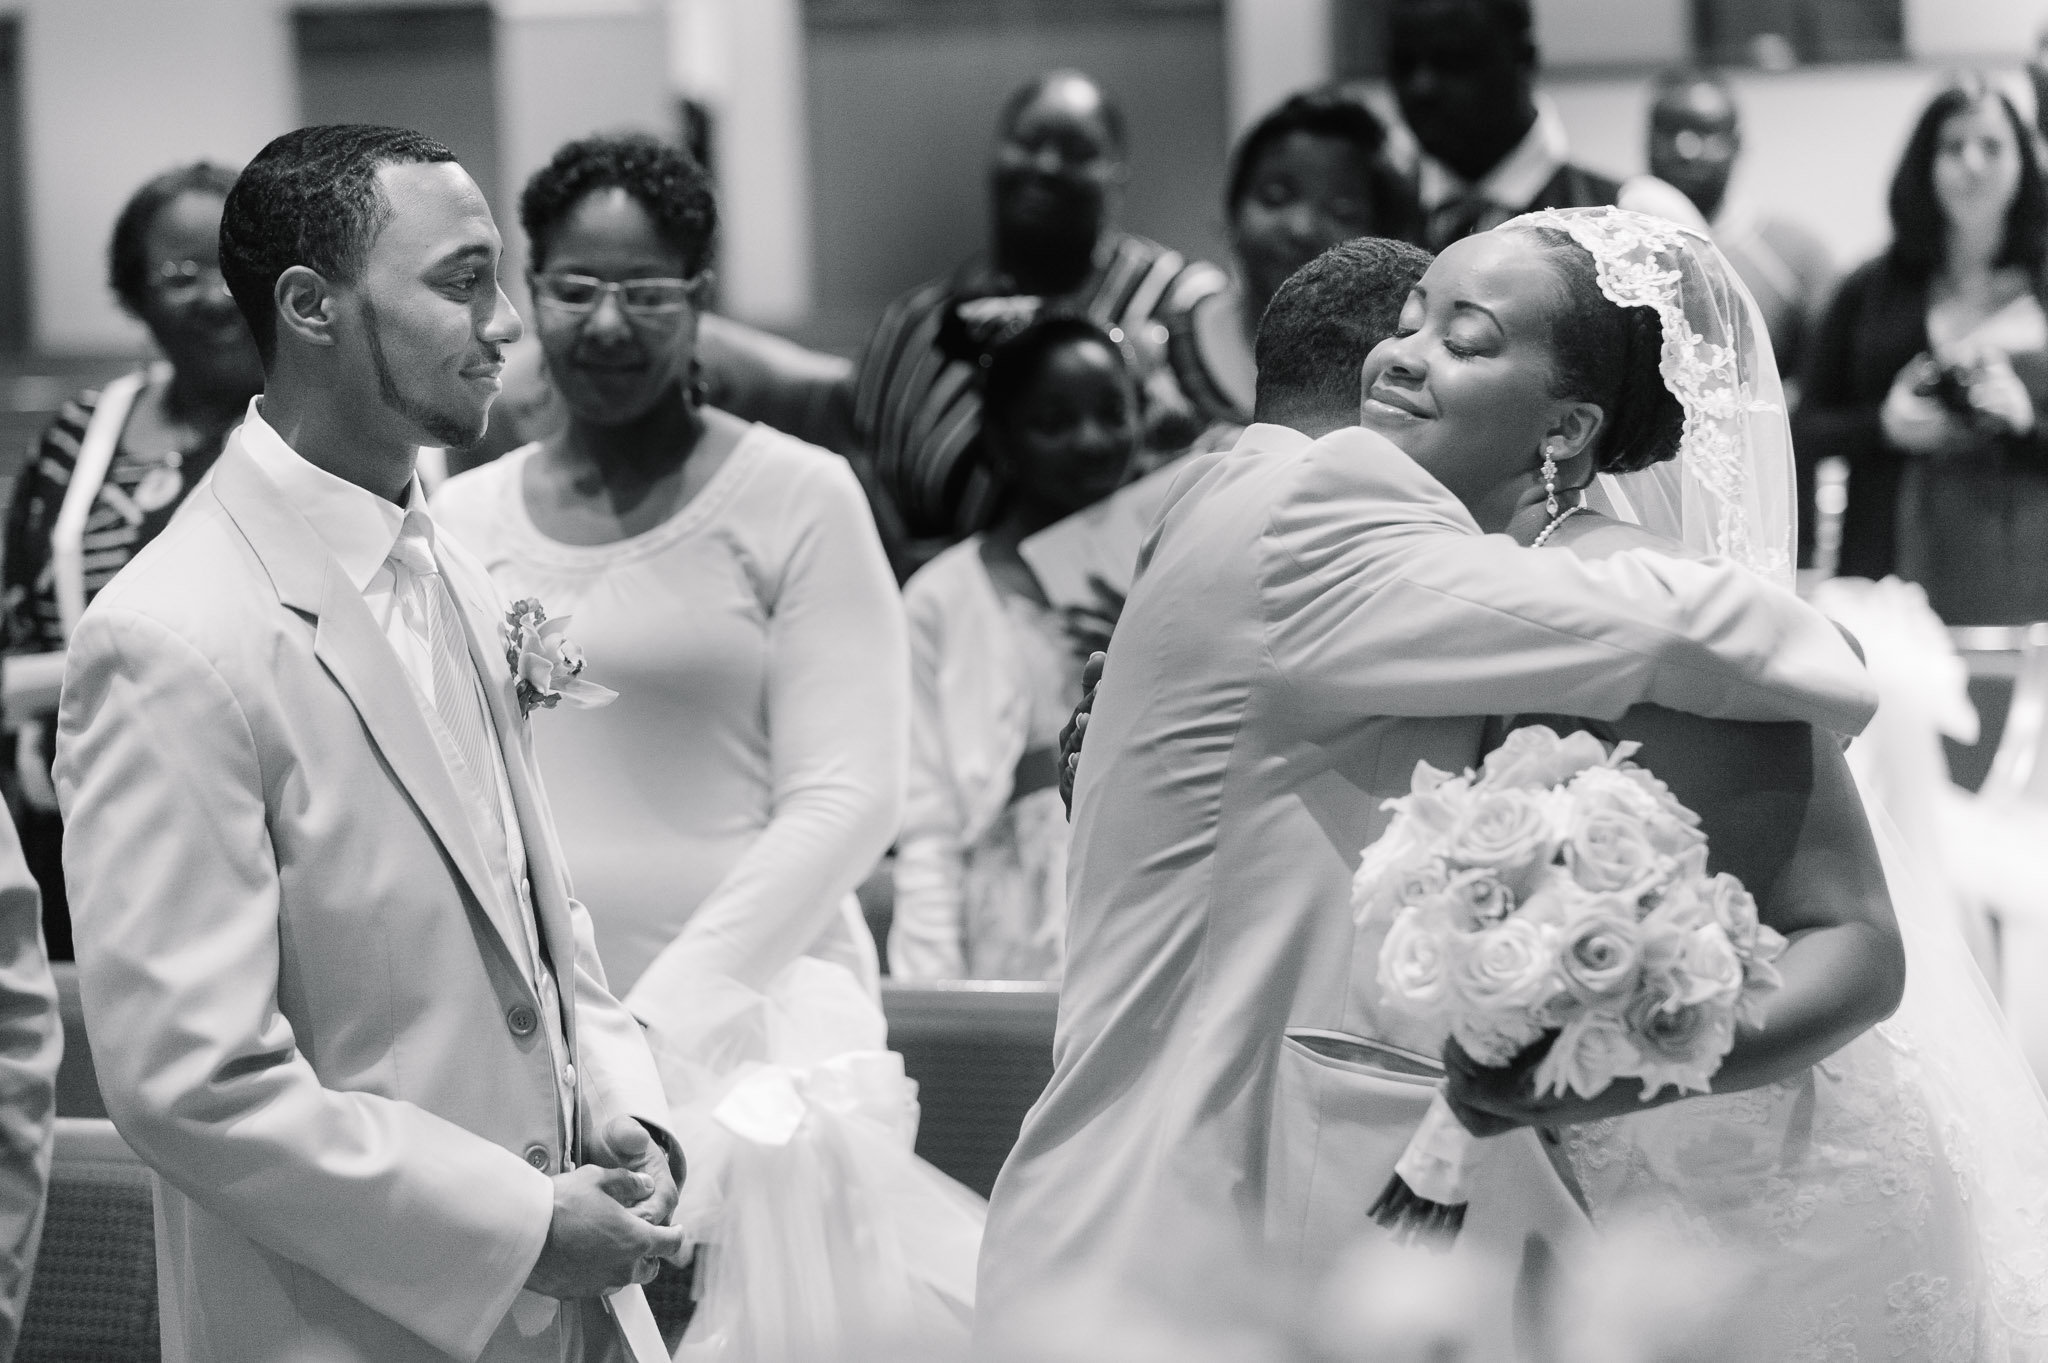 A father hugs his daughter as the groom looks on at this Buffalo wedding ceremony